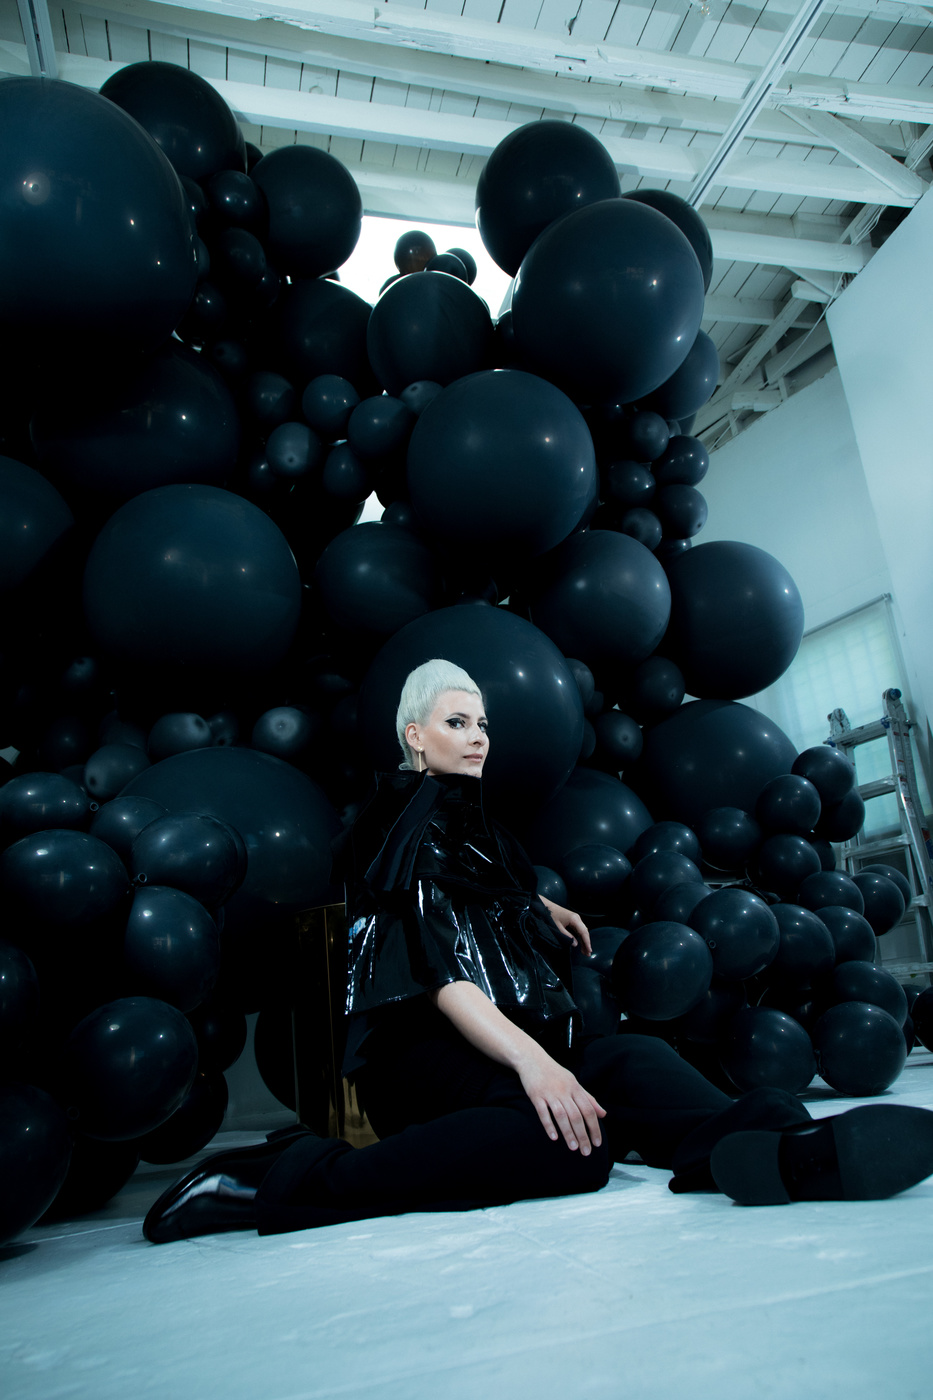 Artist Jihan Zencirli in her studio in Los Angeles in front of one of her installations photographed by Ger Ger.